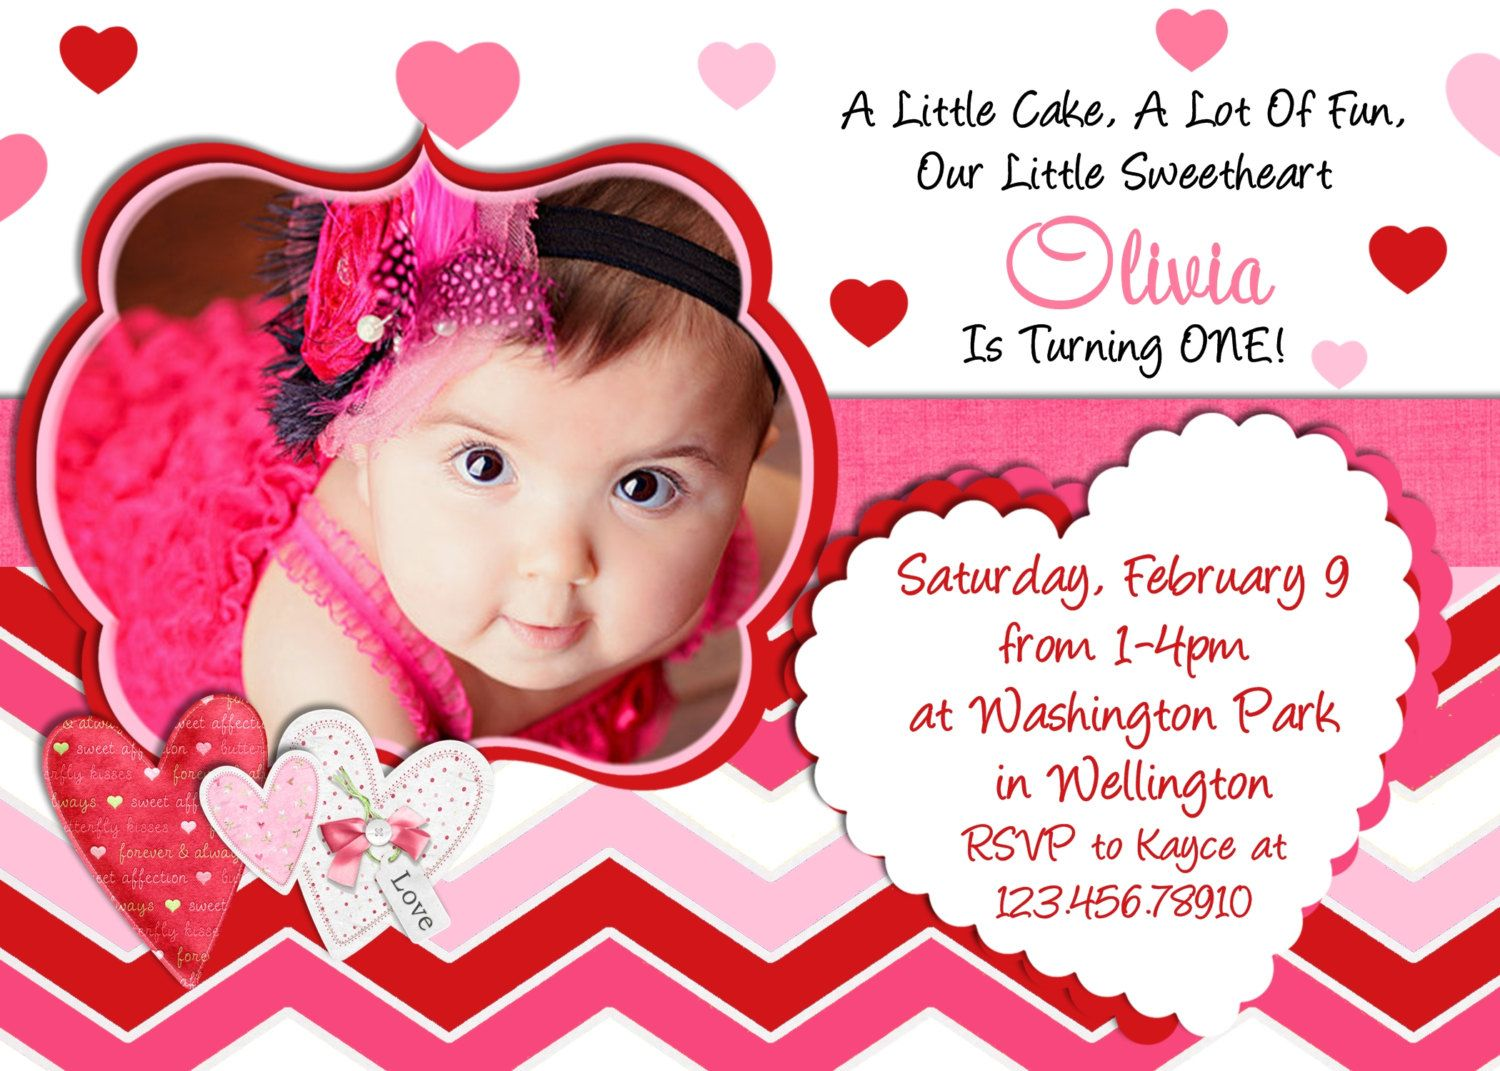 birthday invitation design - Etame.mibawa.co